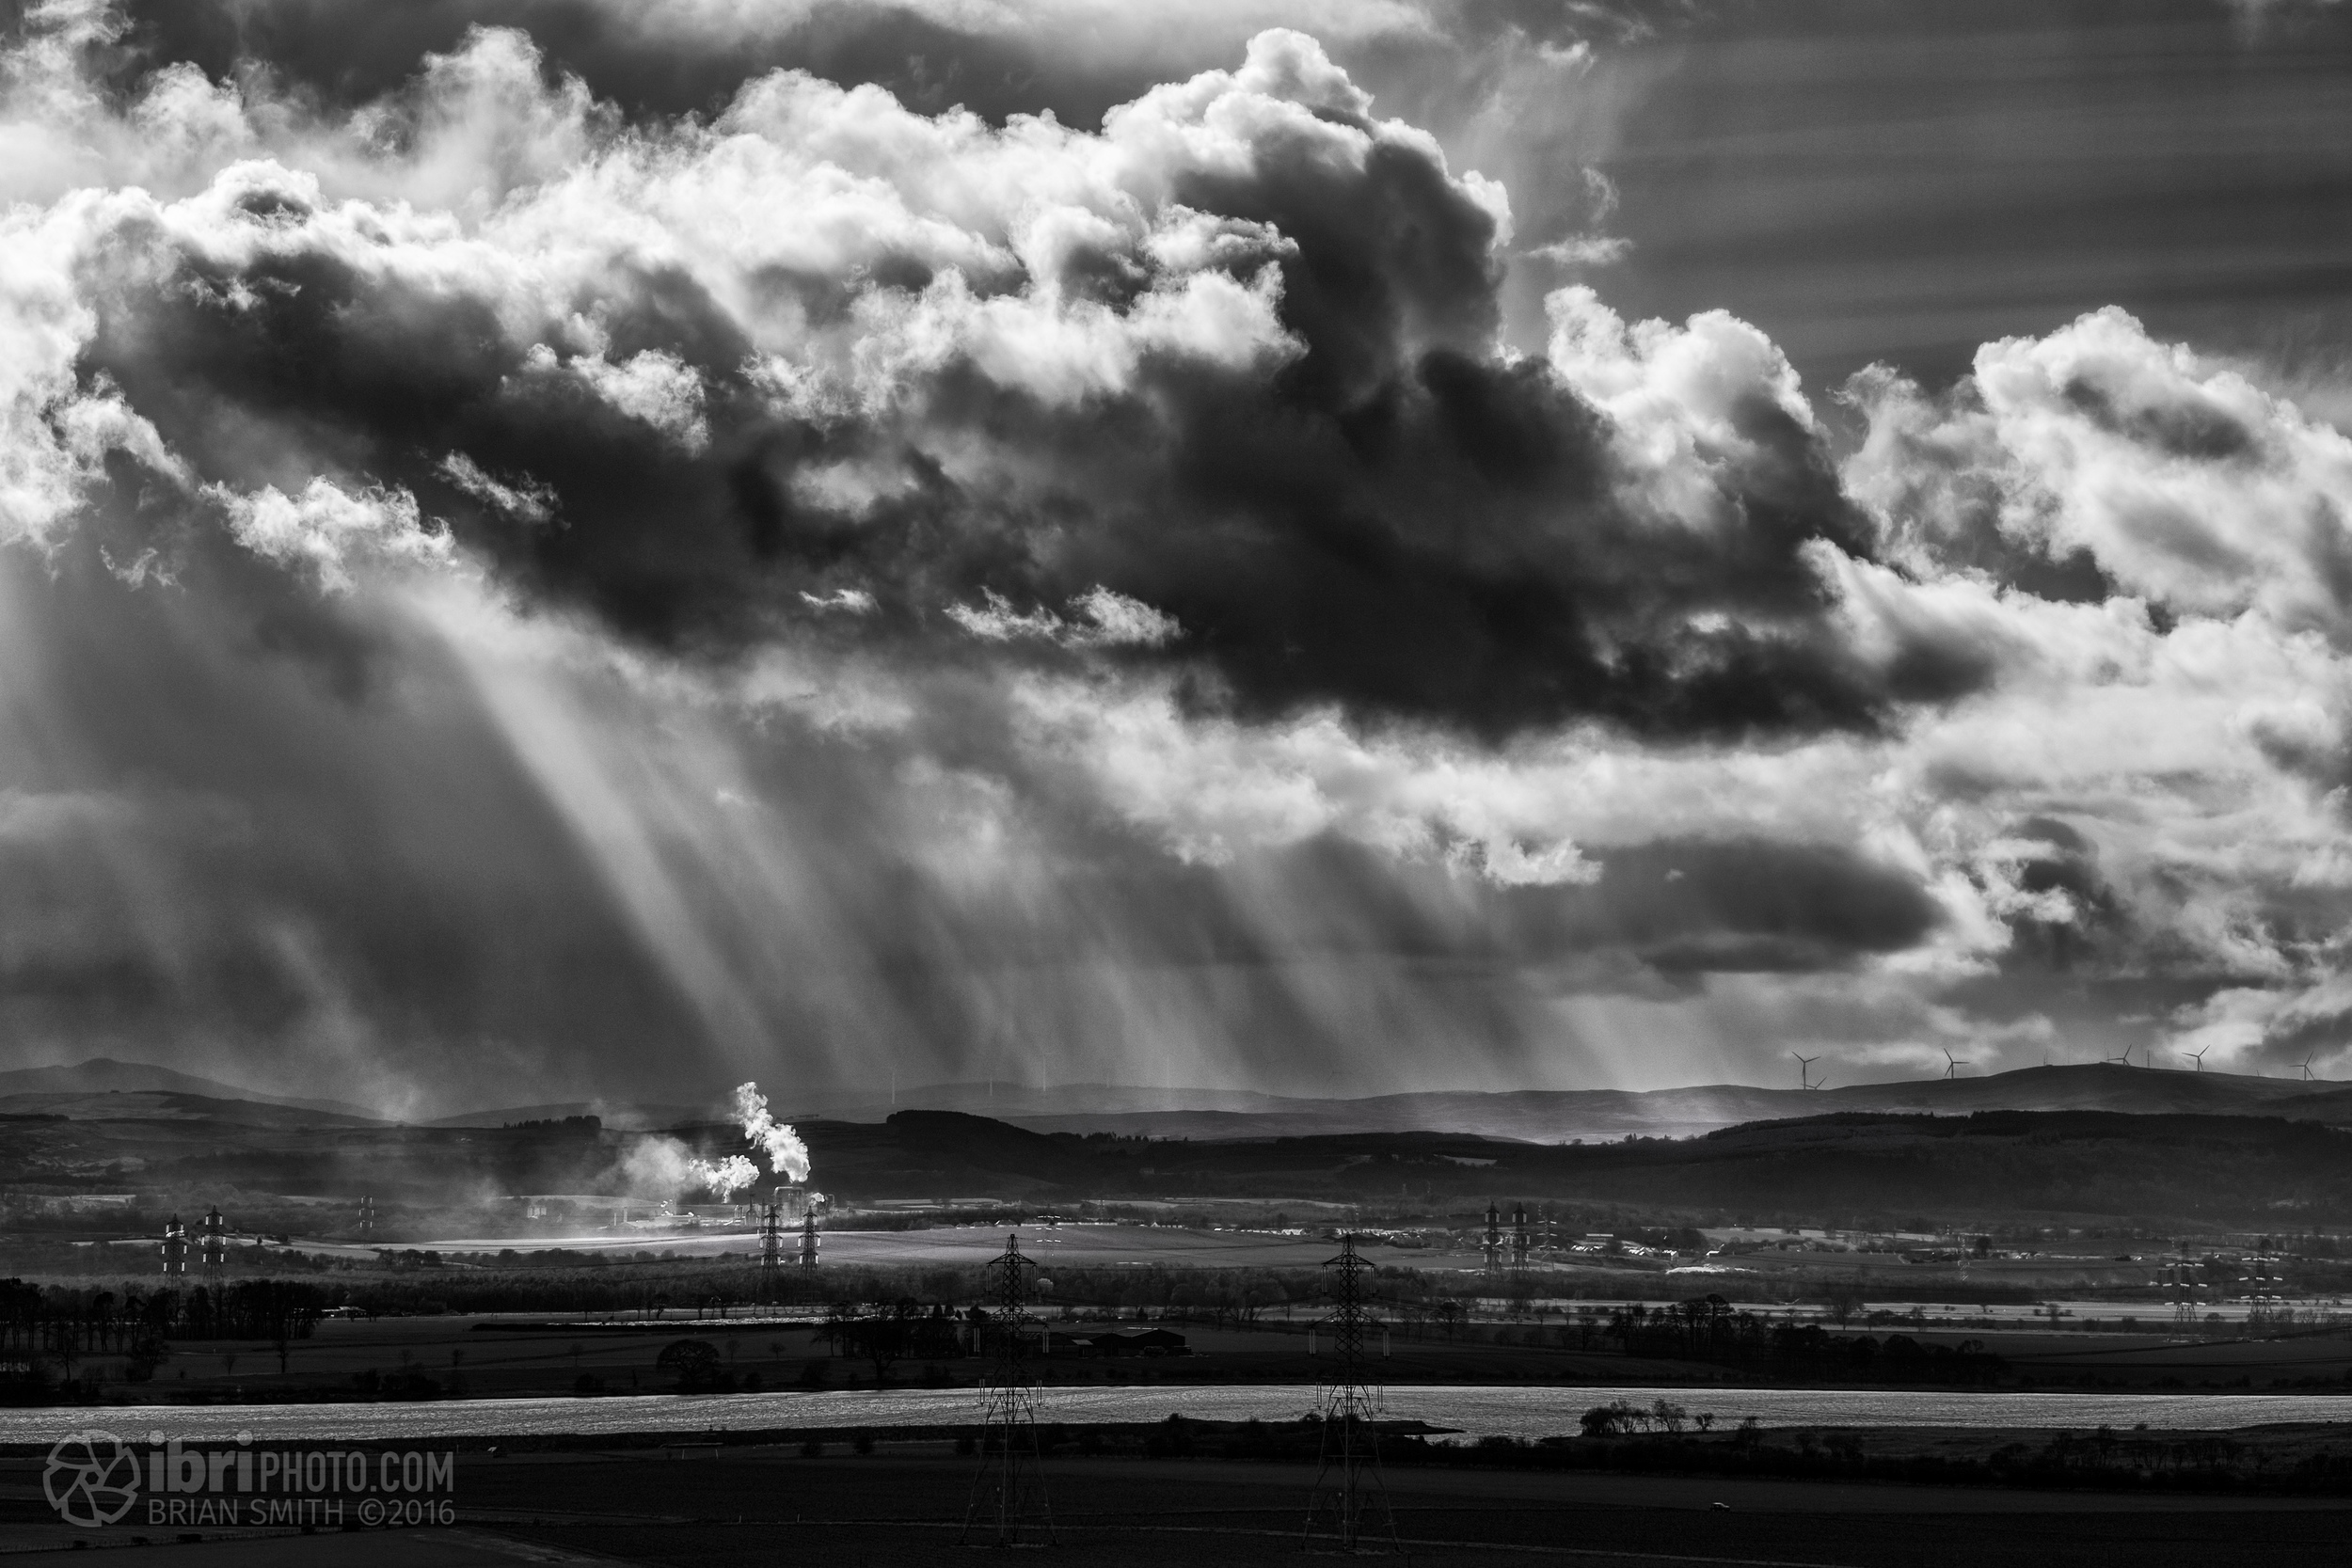 Scattered showers blowing in from the Campsie Hills and over the eastern villages of Stirling. Made for some nice rays.